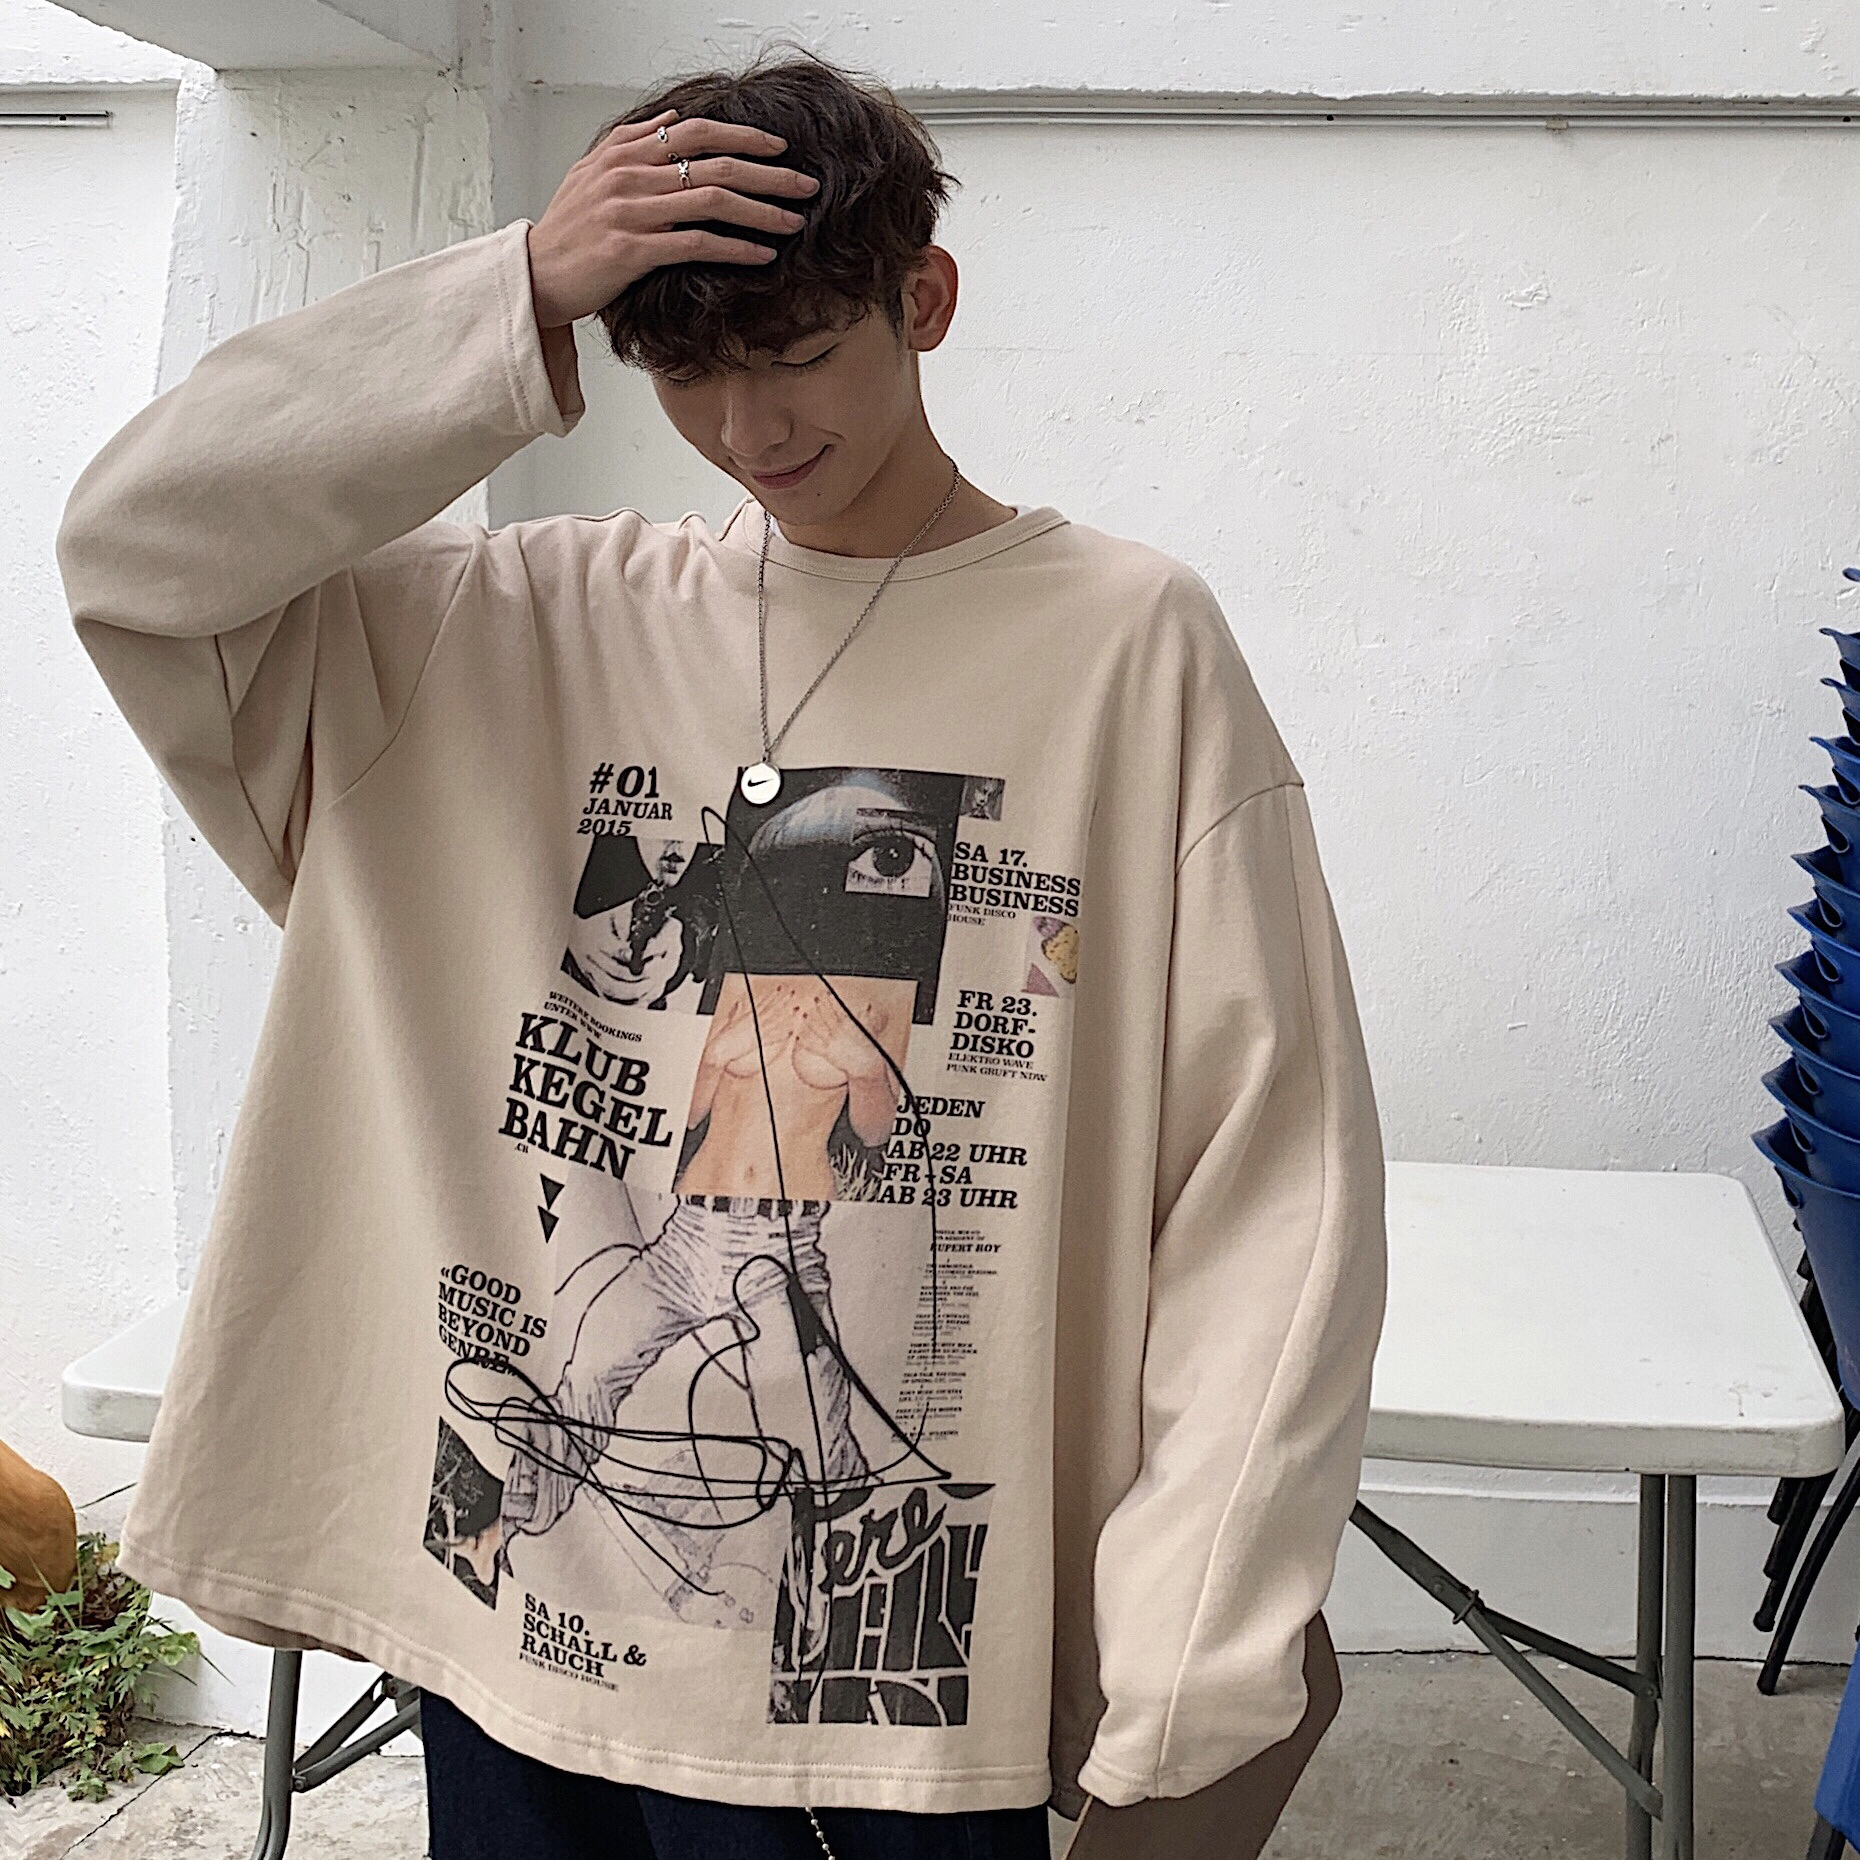 2019 Spring Men's New Male Doodle Printing Coats Fashion Trend Pullover Hoodies Cotton Clothes Casual Khaki Sweatshirts M-XL